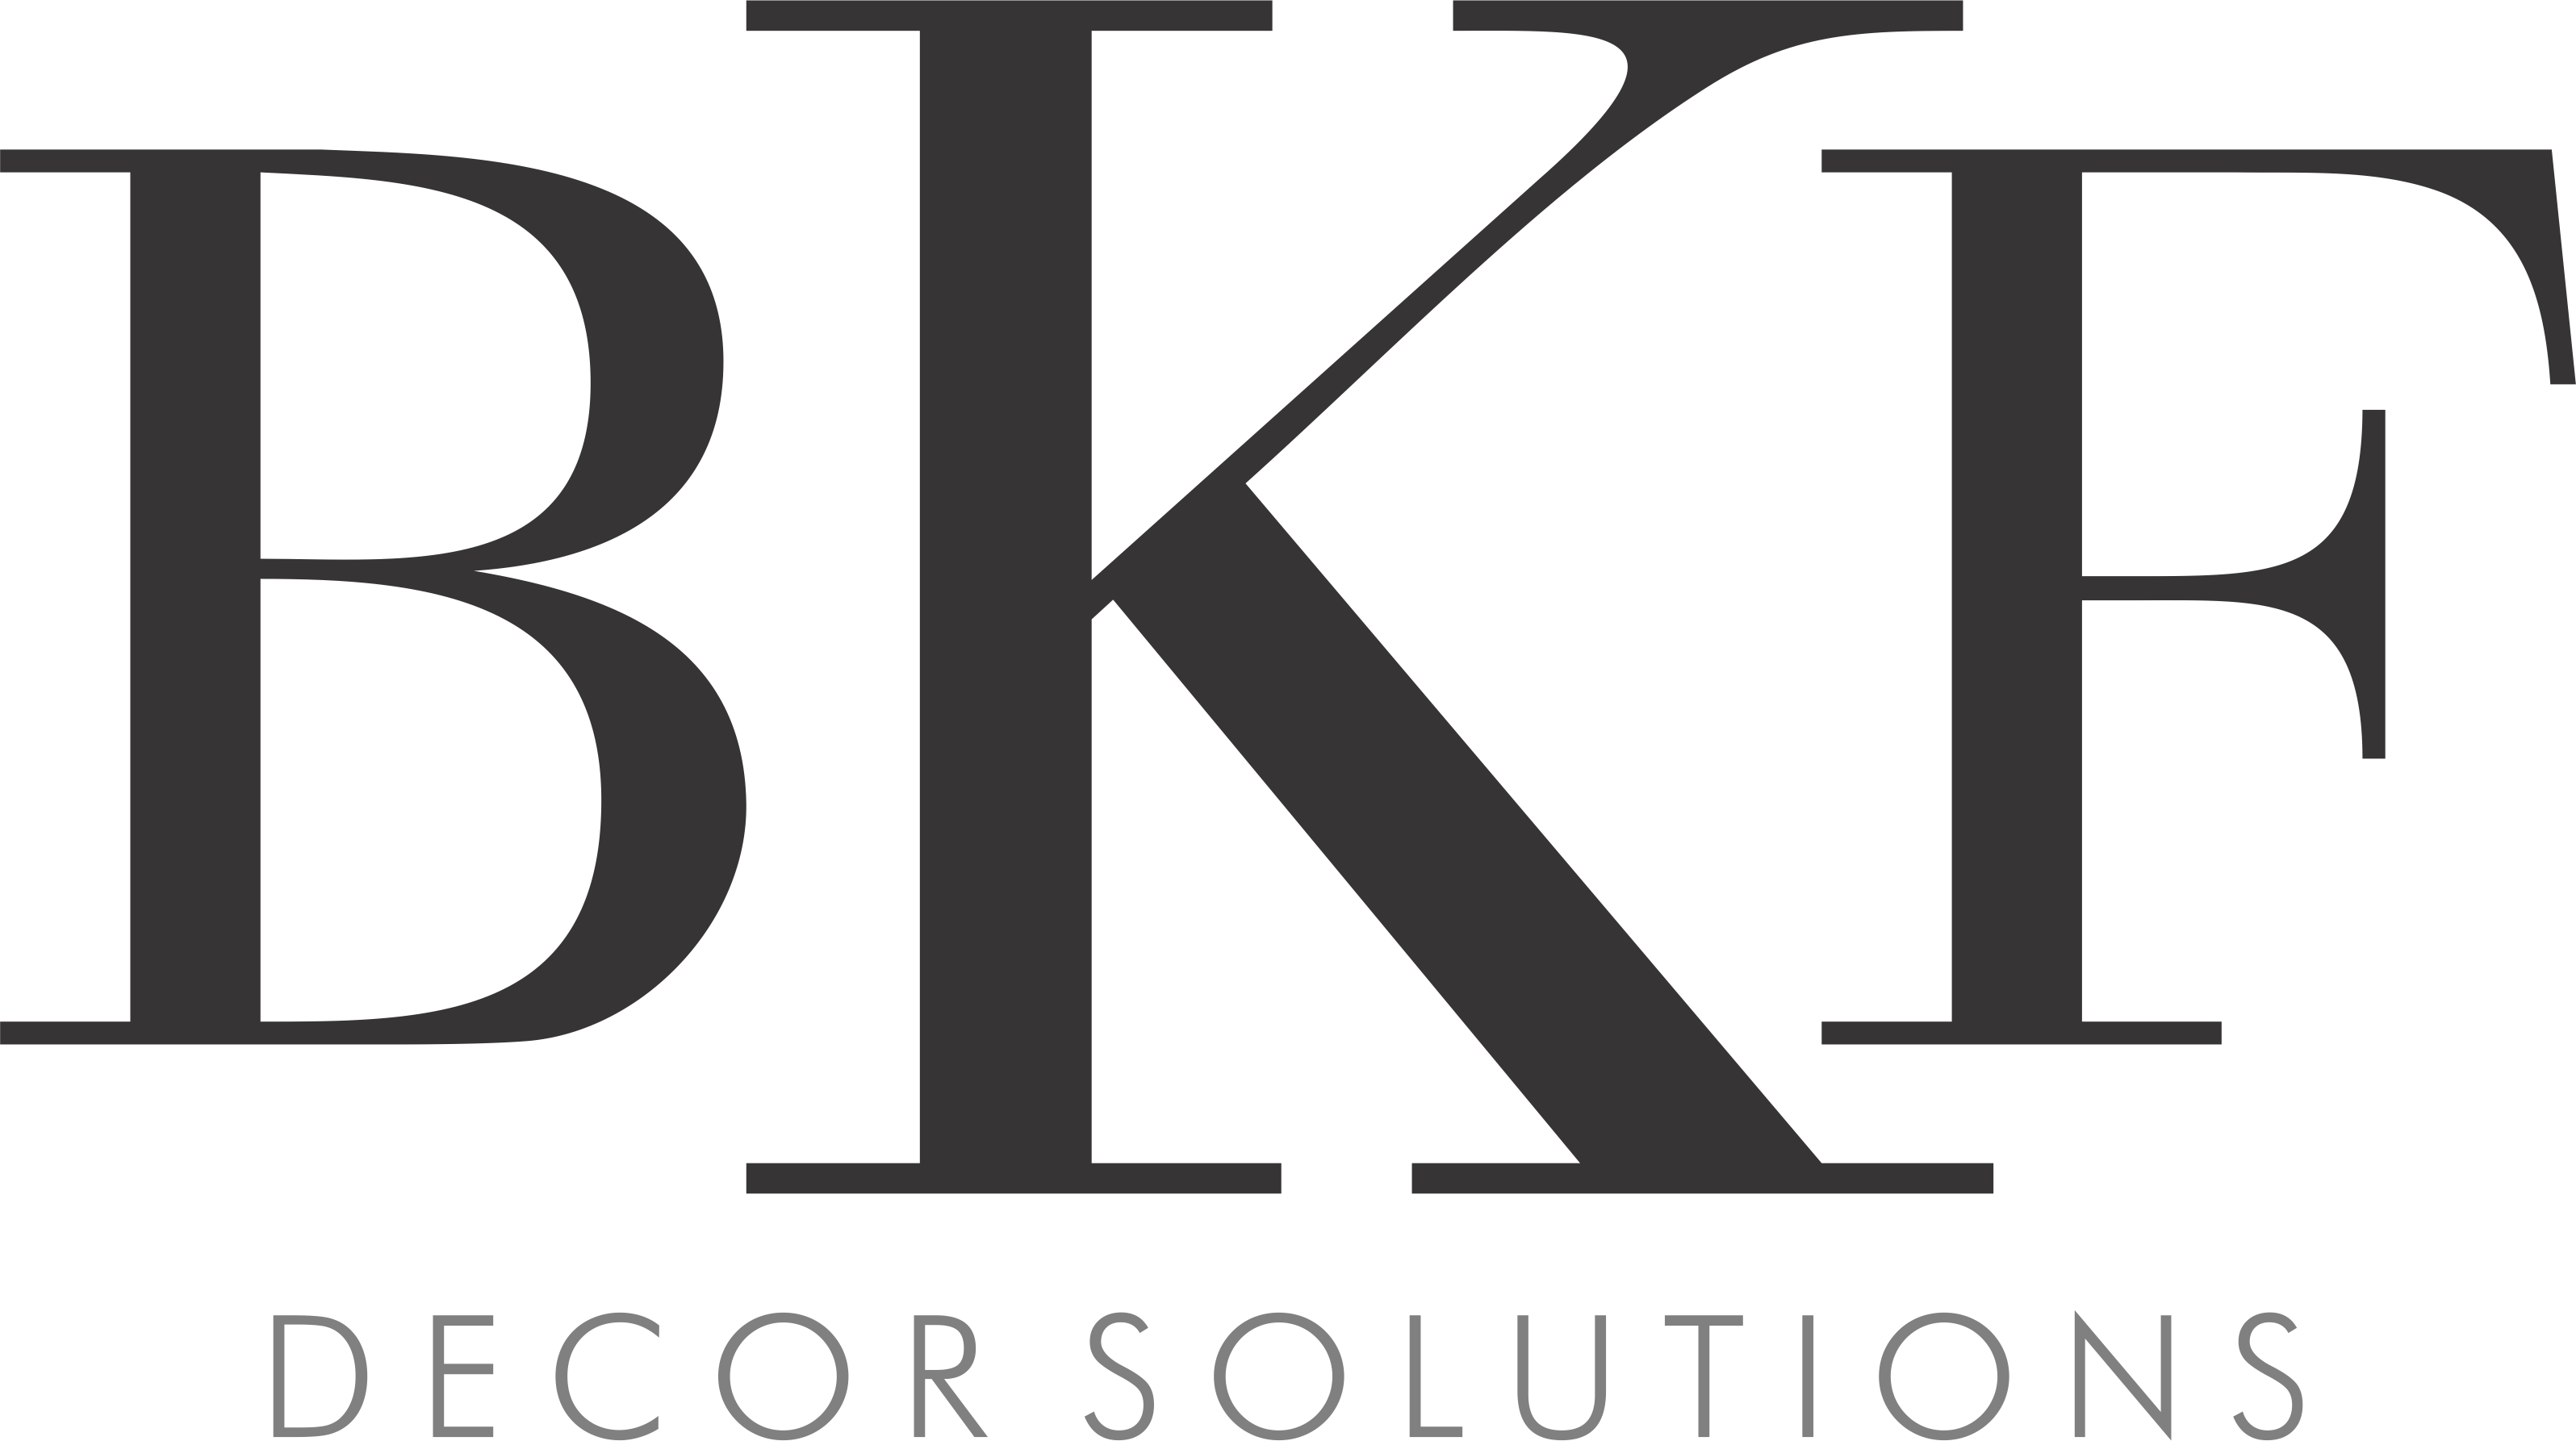 BKF Decor Solutions